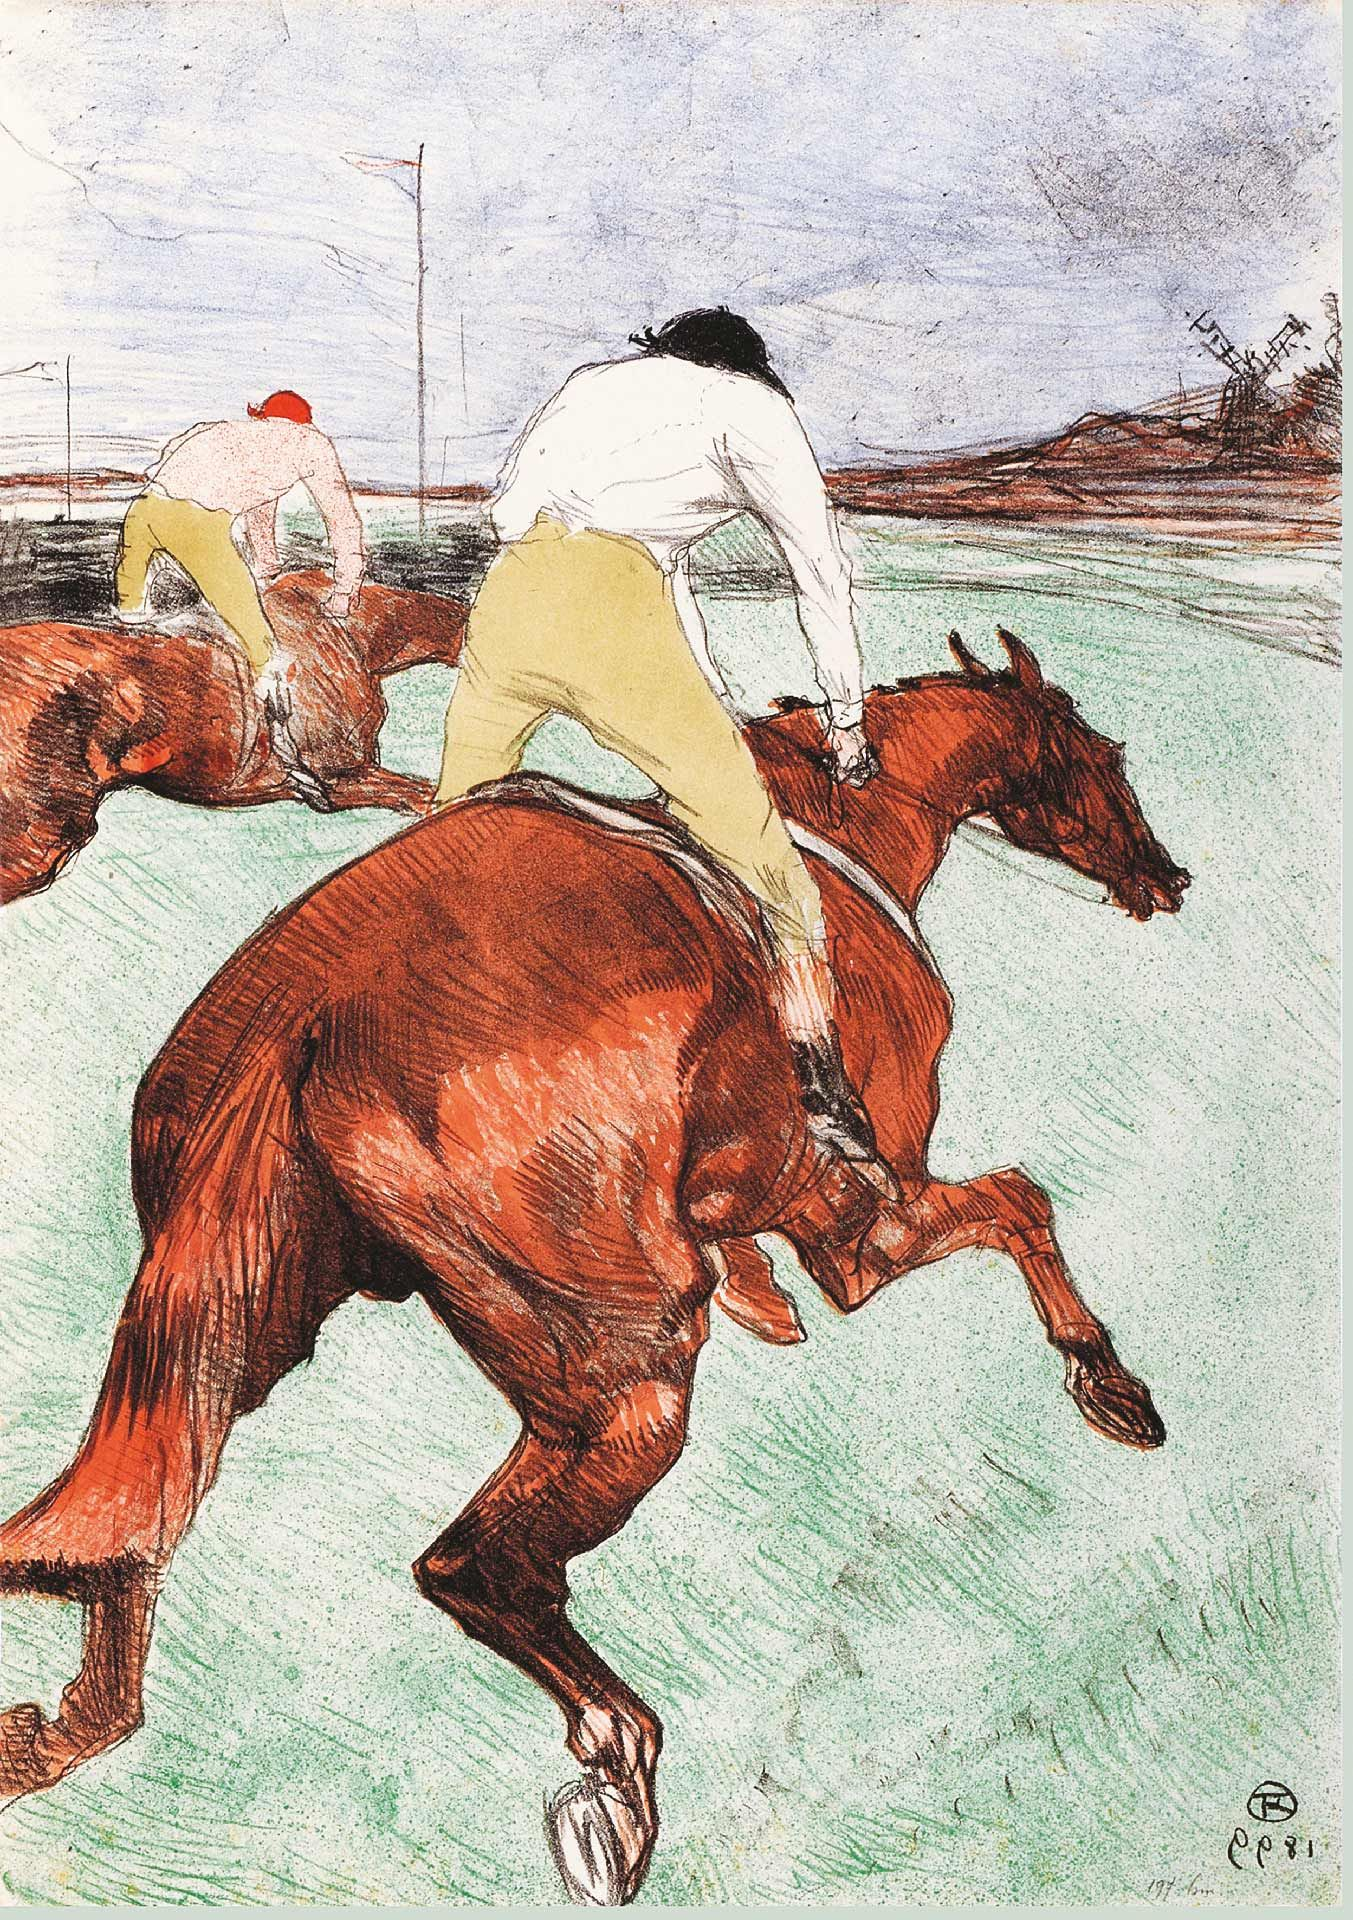 Henri de Toulouse-Lautrec (1864-1901), Le Jockey, 1899, crayon, brush and spatter lithograph, printed in six colours. Key stone printed in black, colour stones in turquoise-green, red, brown, gray-beige and blue on China paper, State II/II, 51.8 x 36.2 cm. Private collection. Photo Peter Schälchi